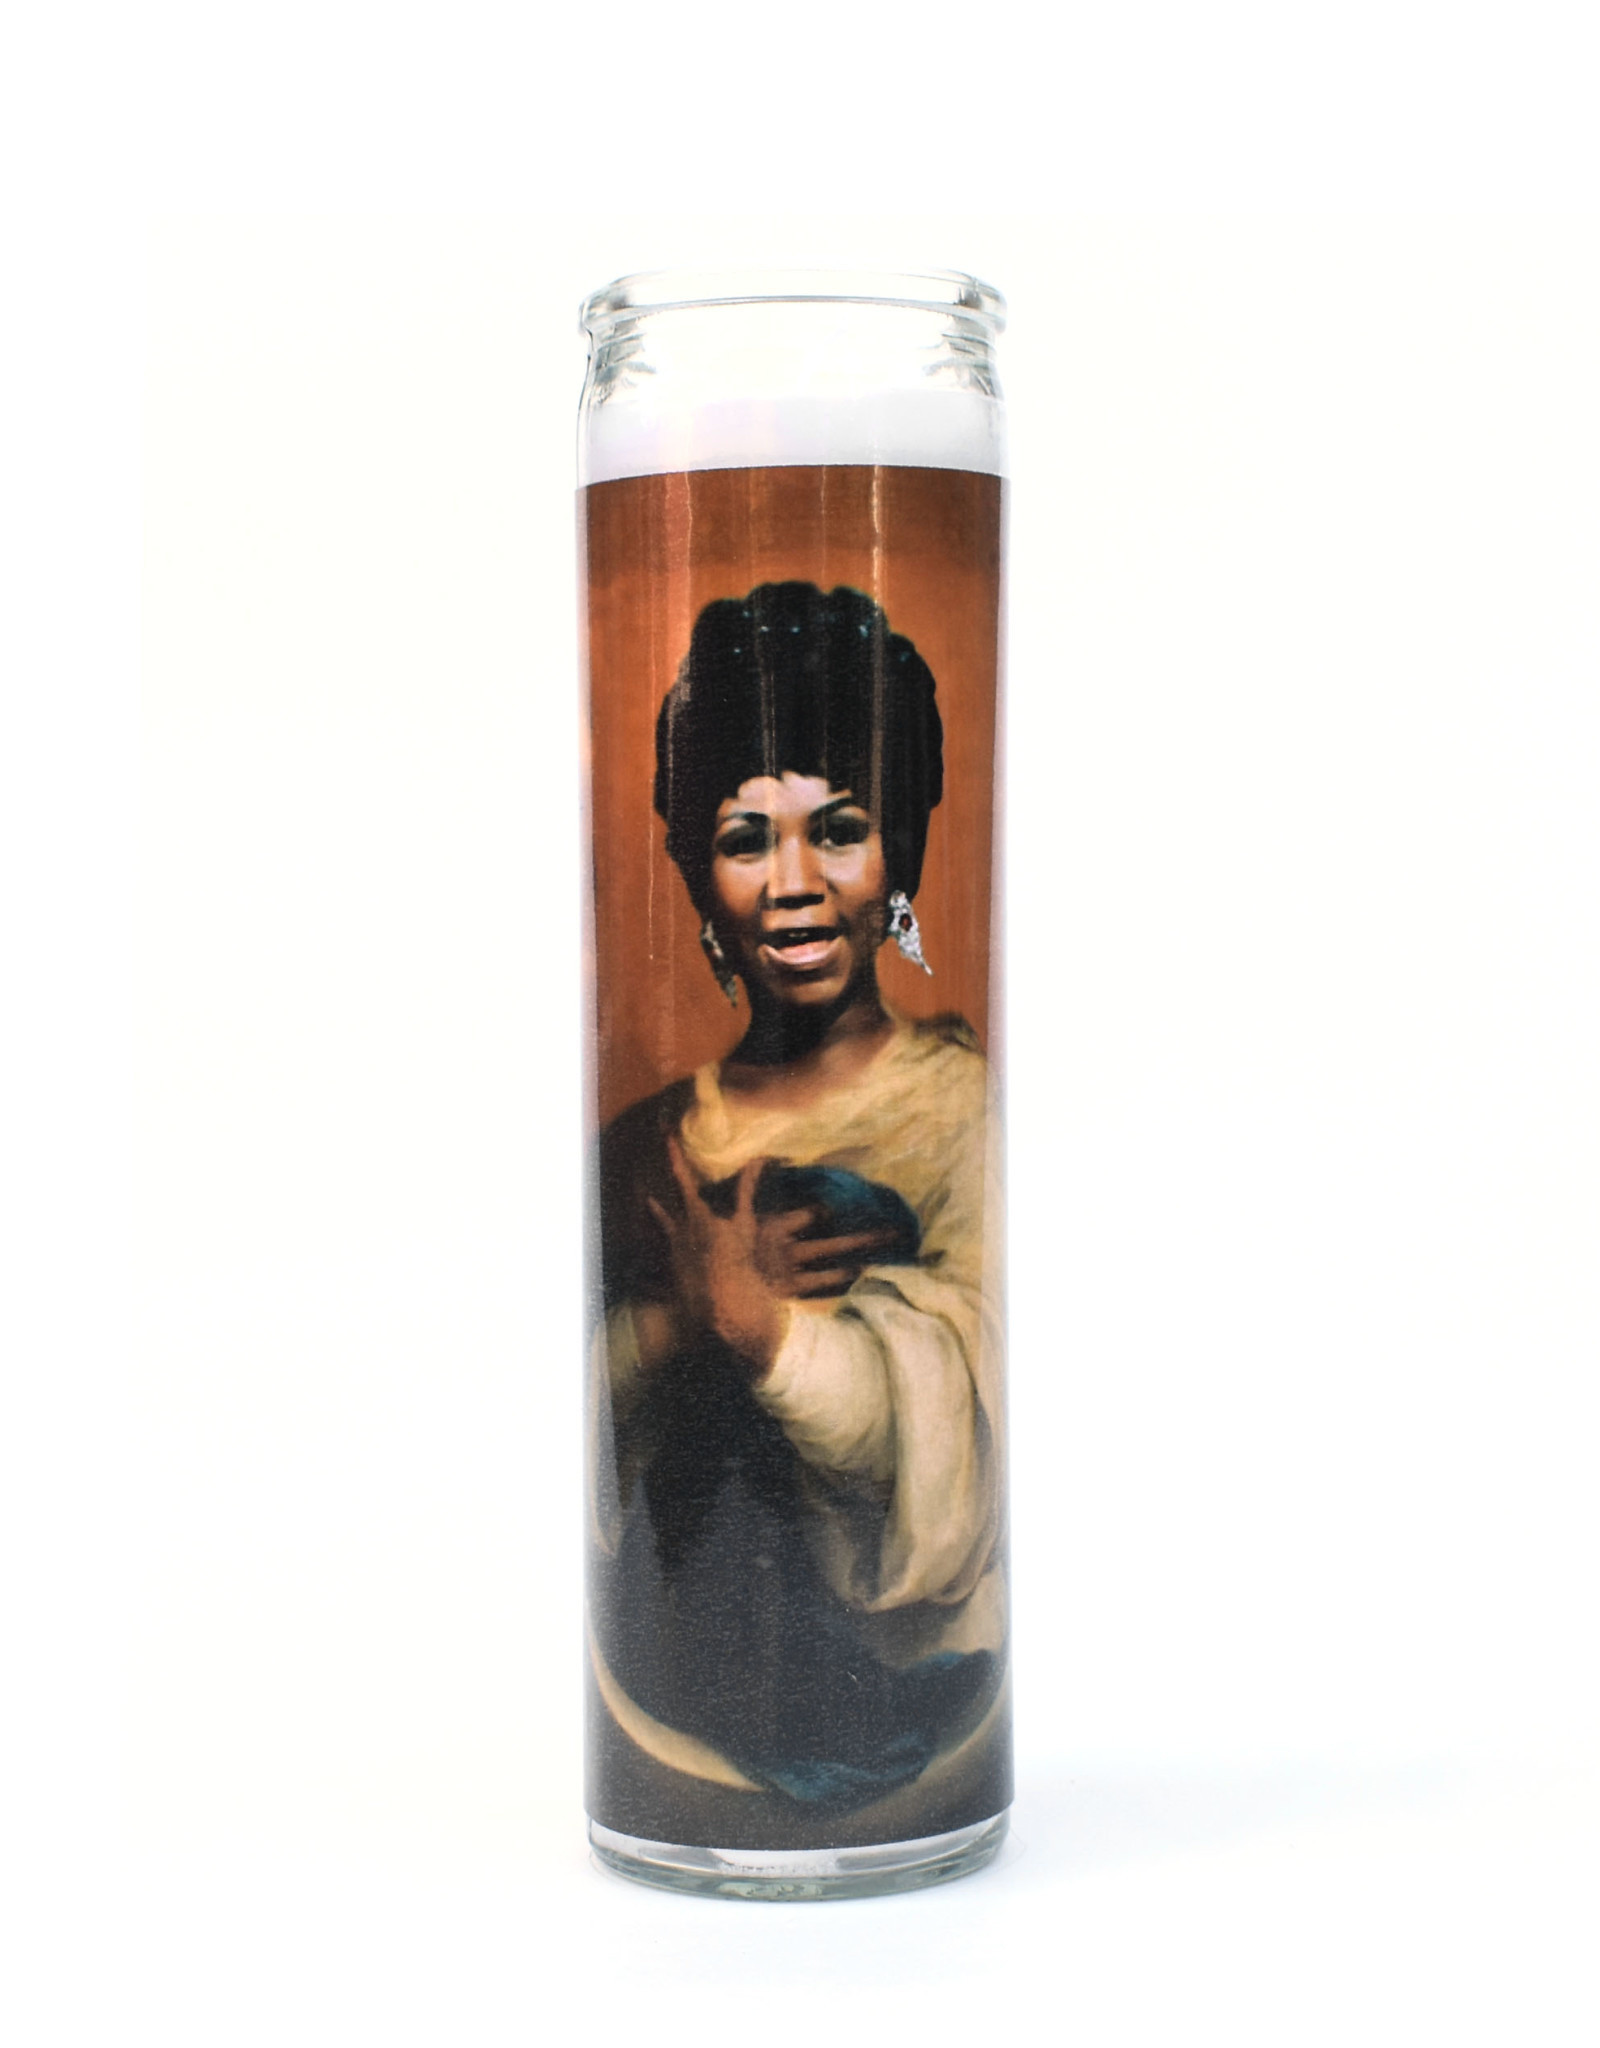 St. Aretha Franklin Prayer Candle